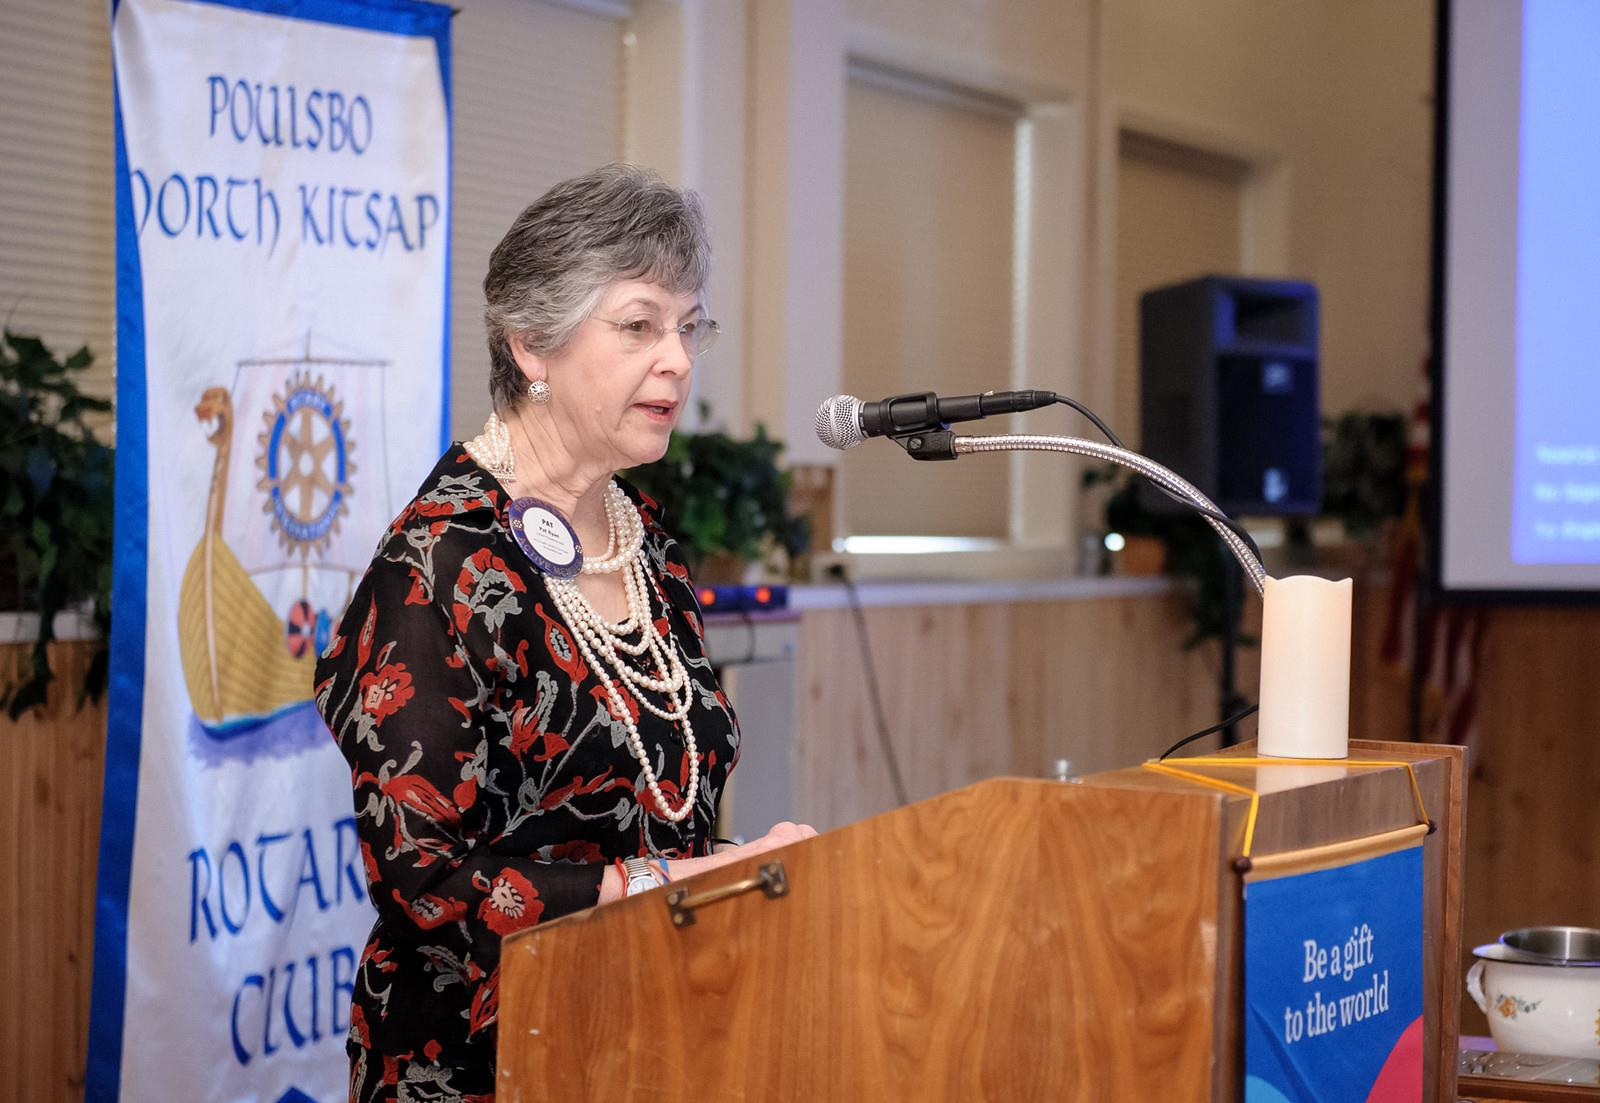 Poulsbo Rotary honors Russell Ferguson